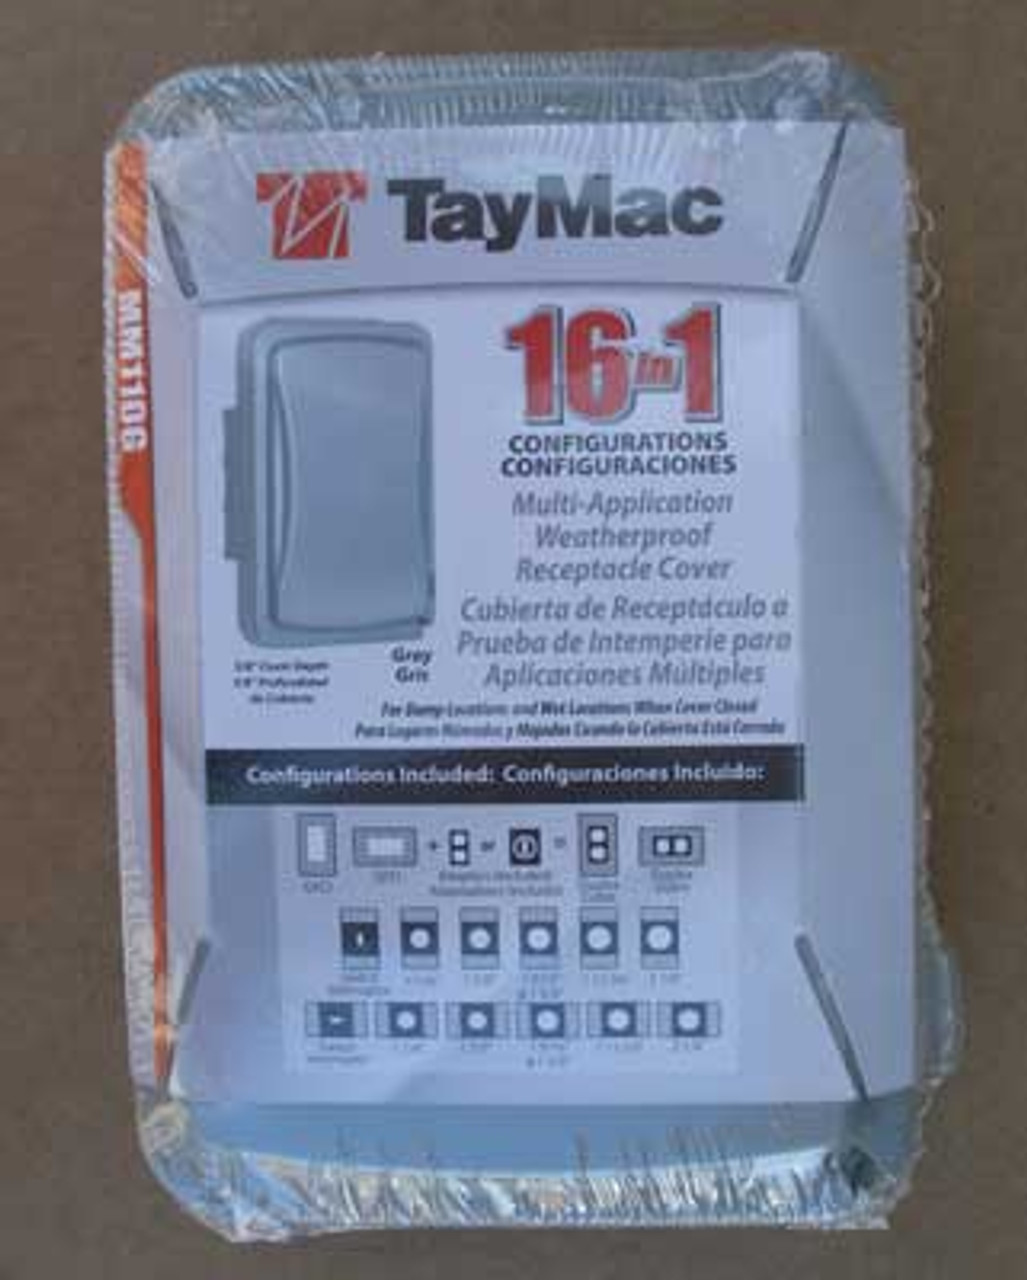 TayMac MM110G Weatherproof 1 Gang Outdoor Receptacle Cover, Lot of 2 - New